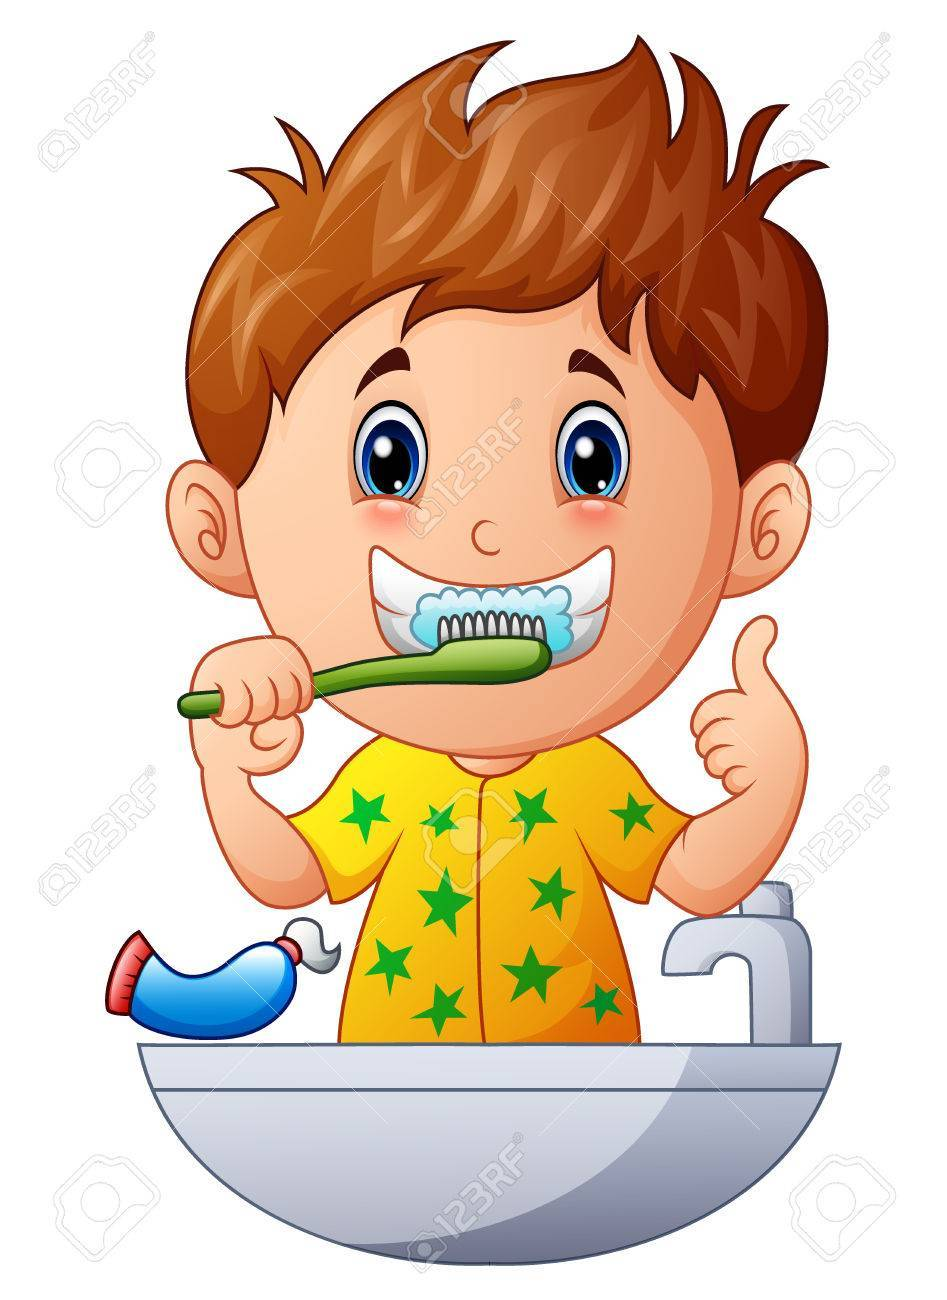 Brush teet clipart clipart free Brushing teeth clipart 2 » Clipart Portal clipart free